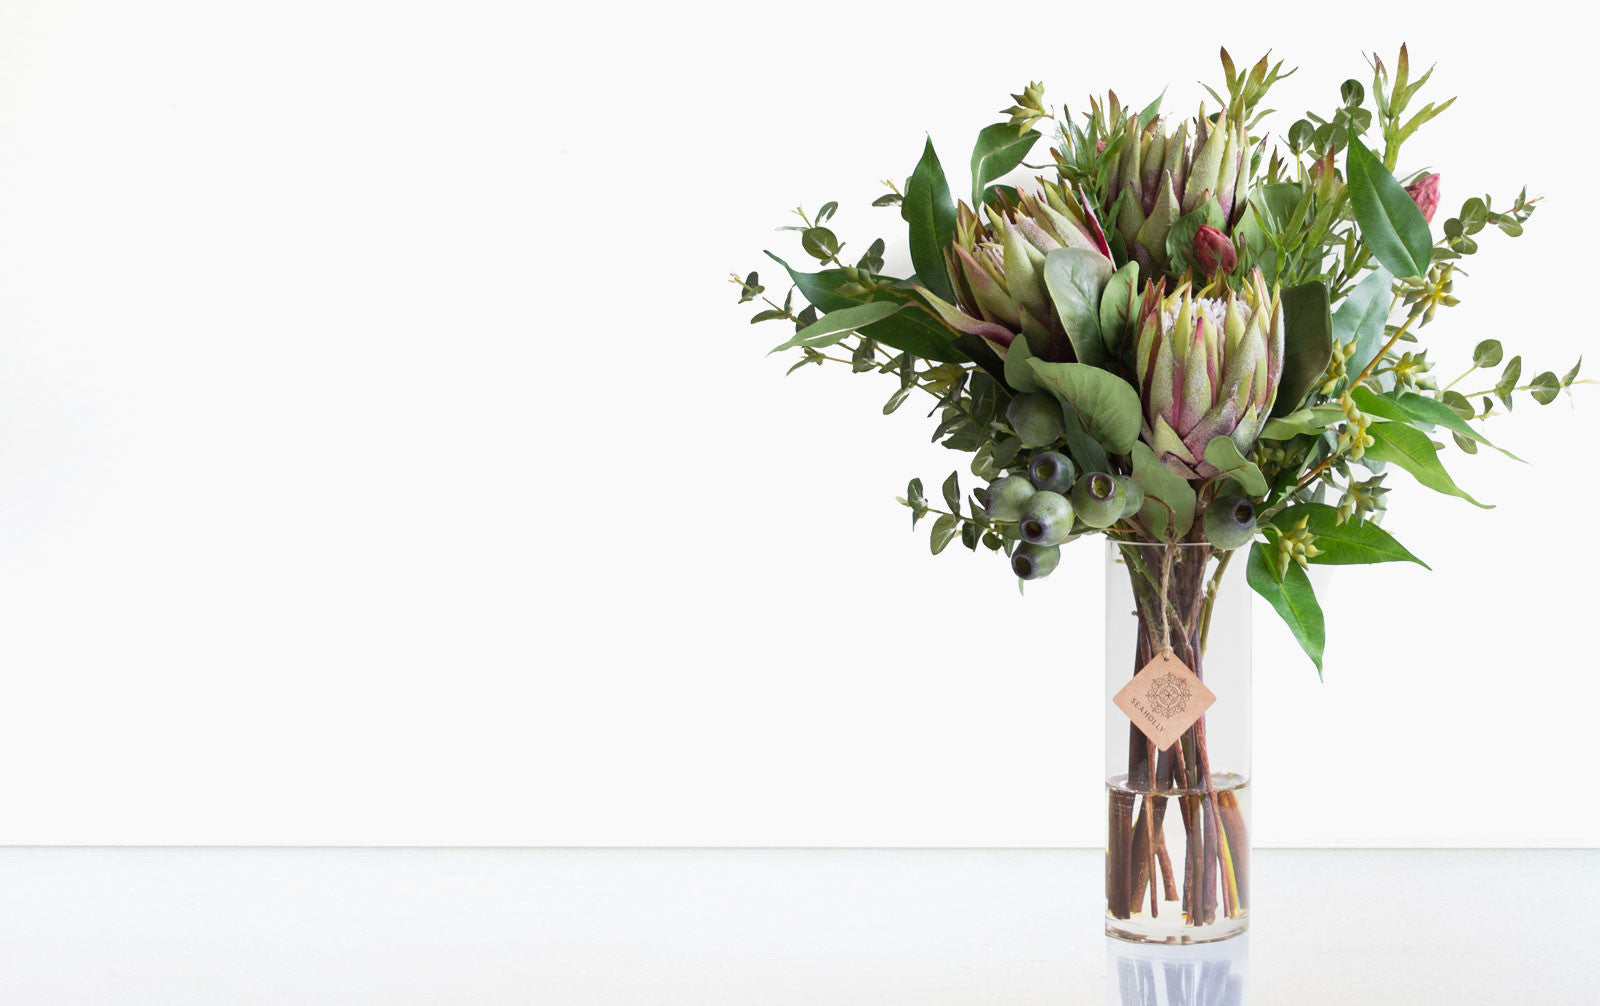 Artificial Flowers & Plants For Your Home, Office Or Wedding ...